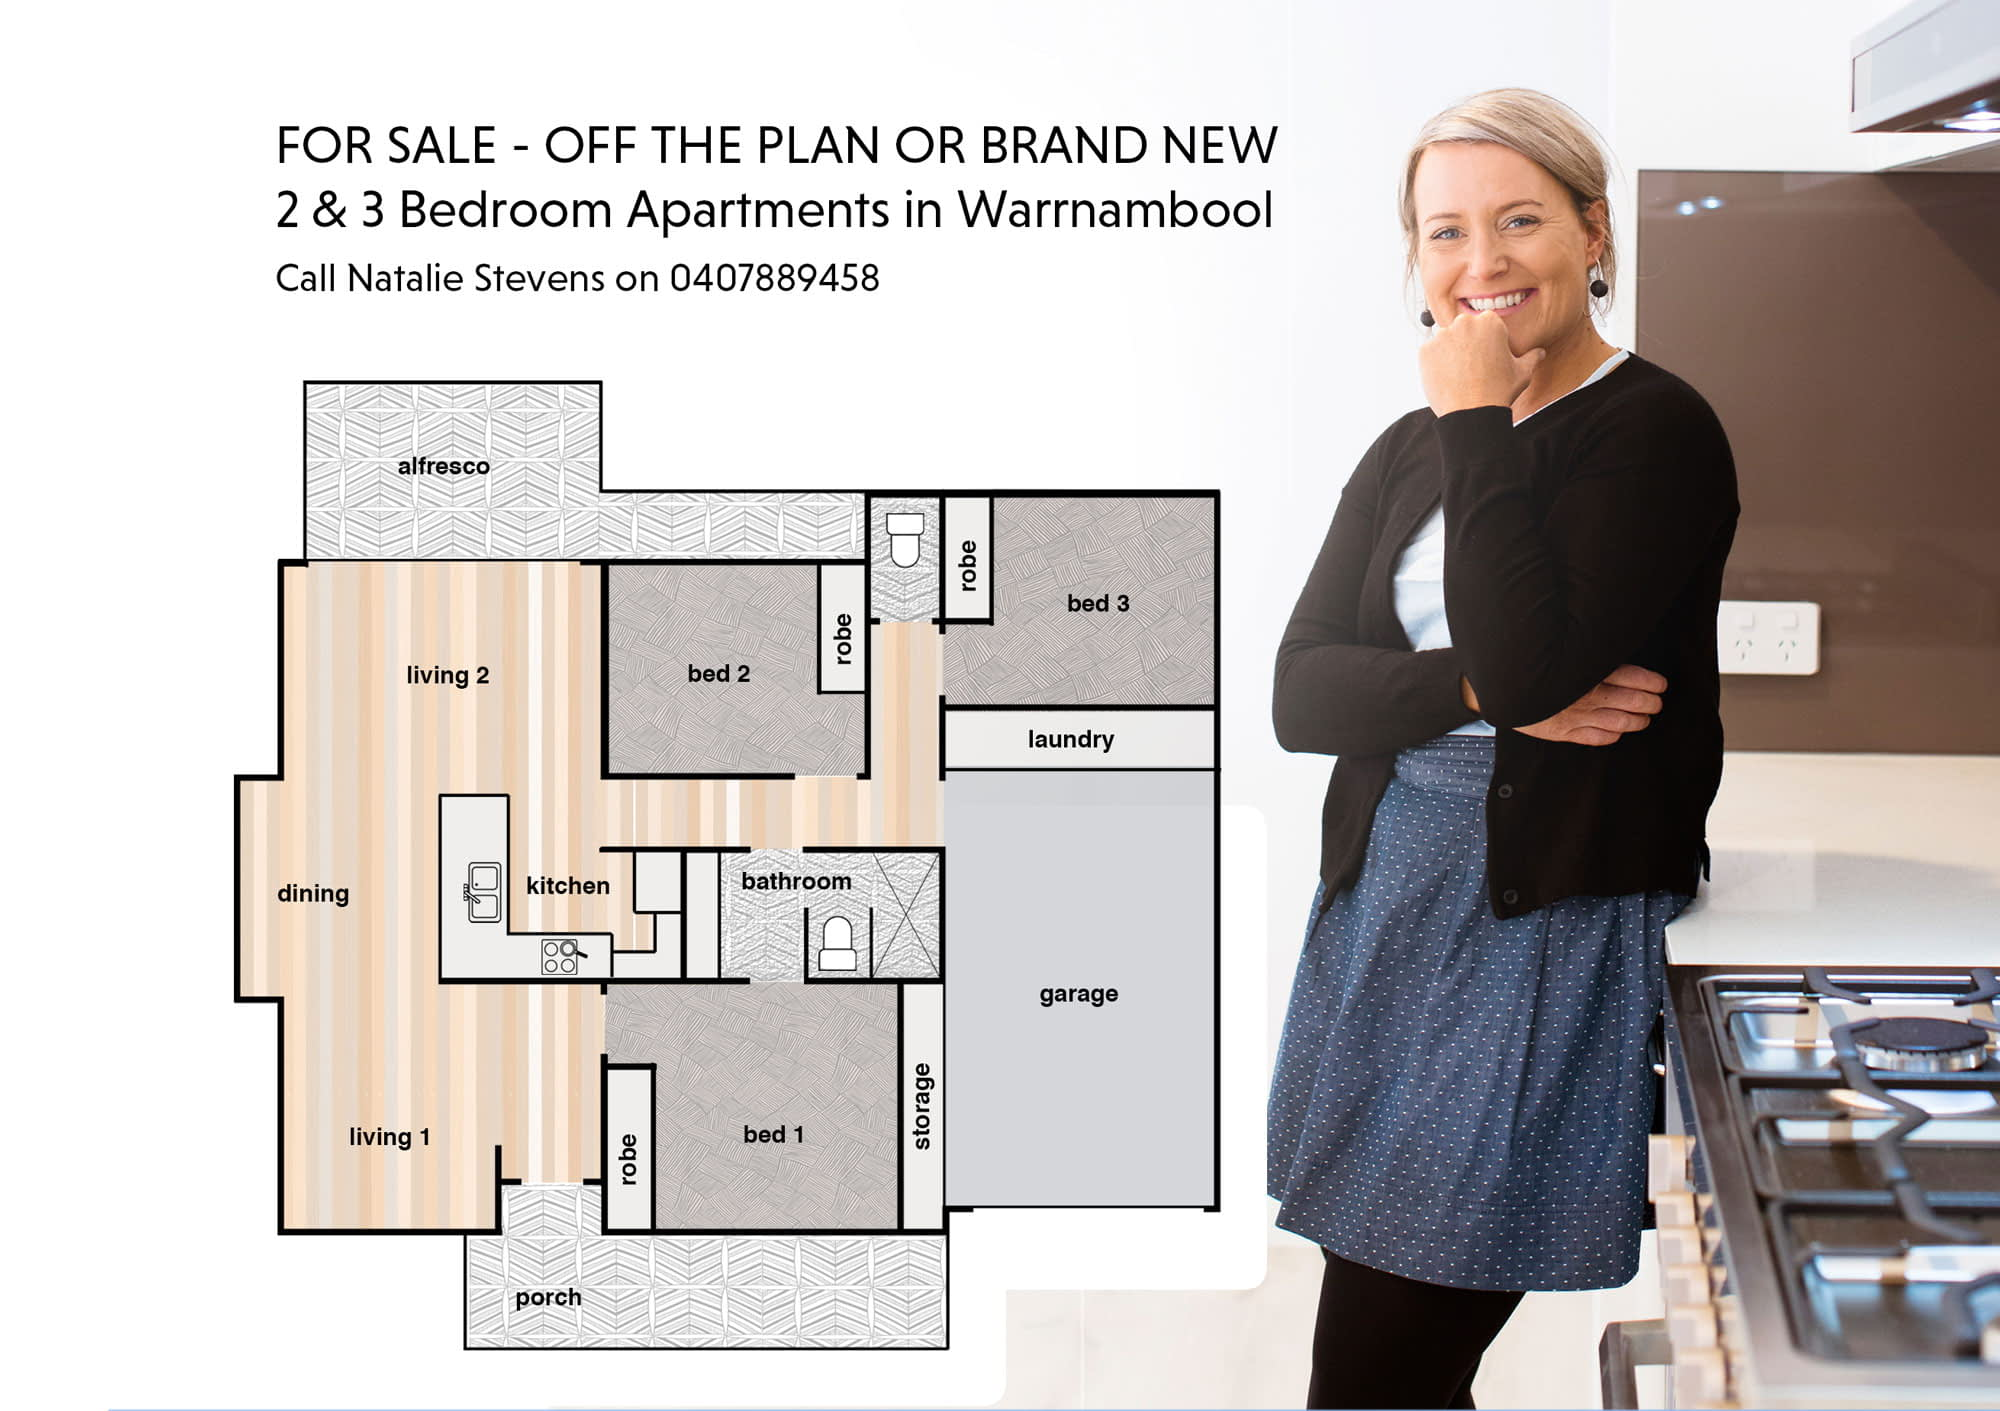 Investment properties for Warrnambool